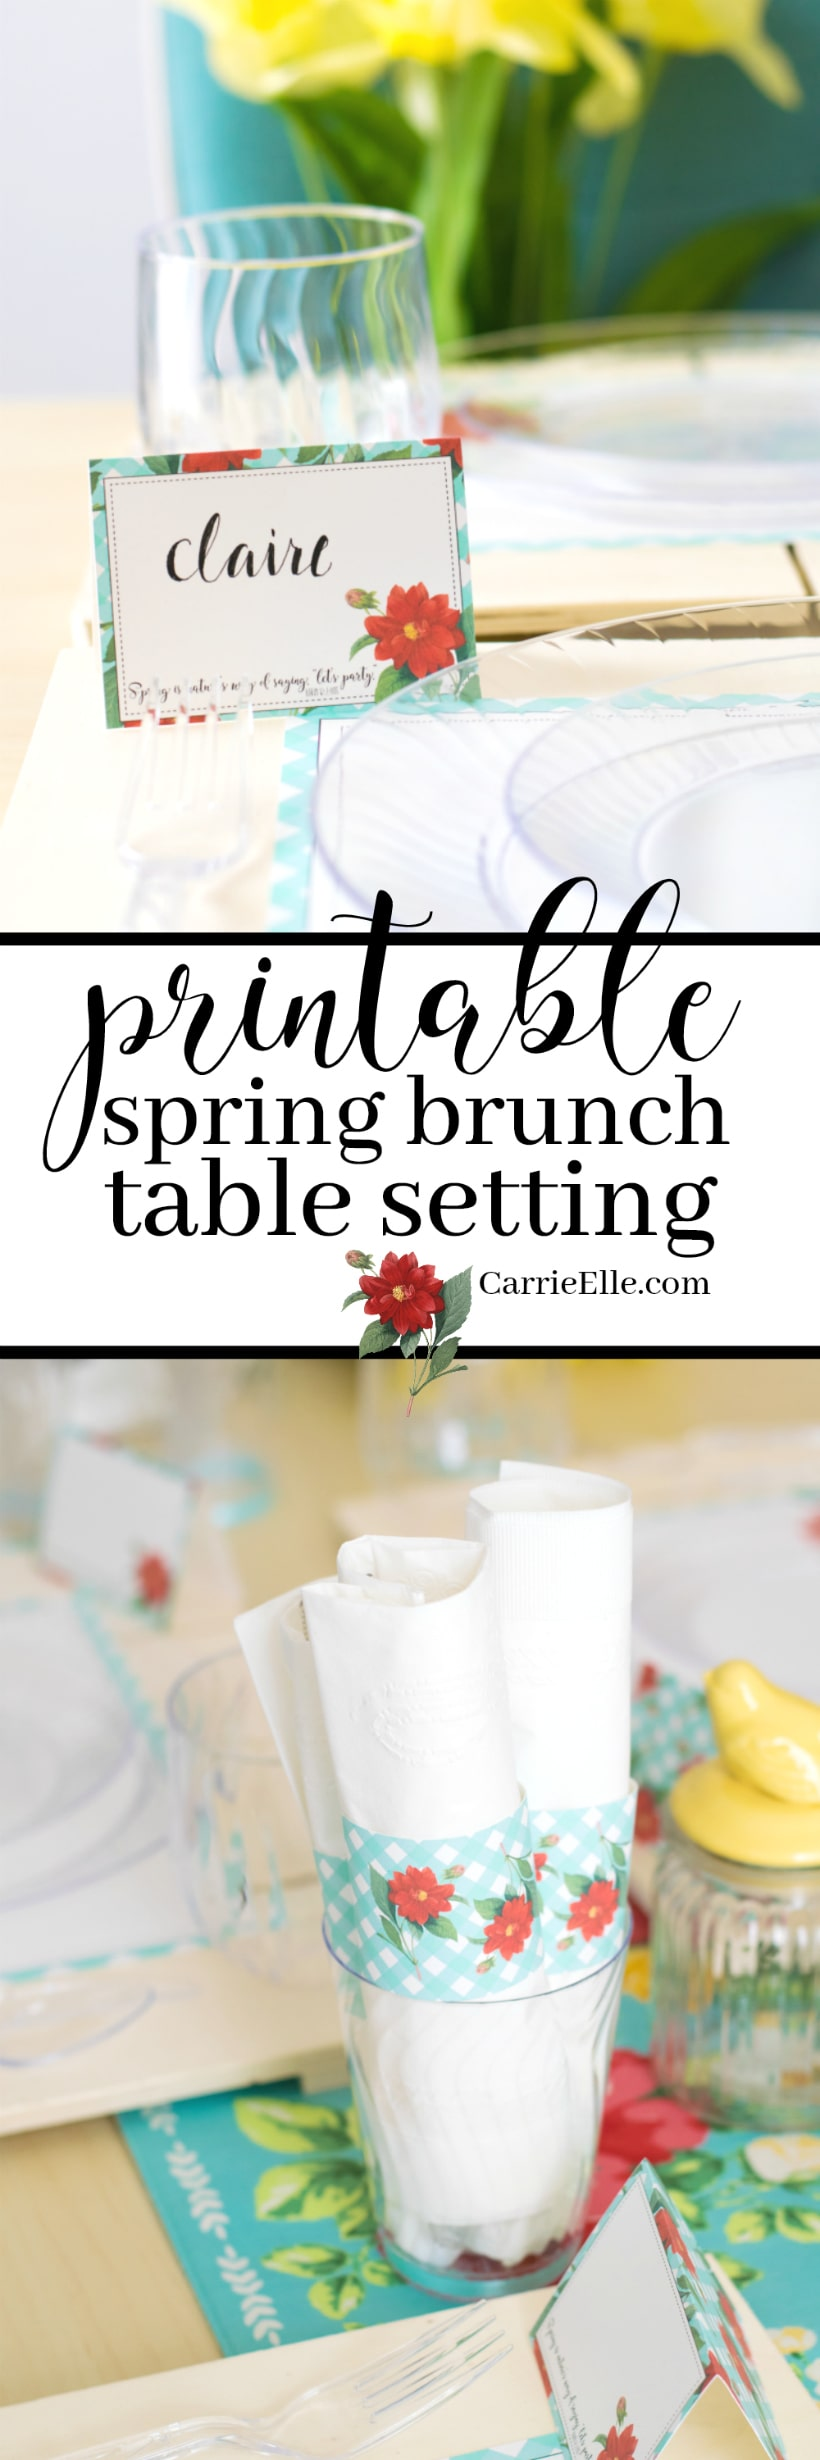 printable spring table setting  sc 1 st  Carrie Elle & Printable Spring Brunch Table Setting - Carrie Elle